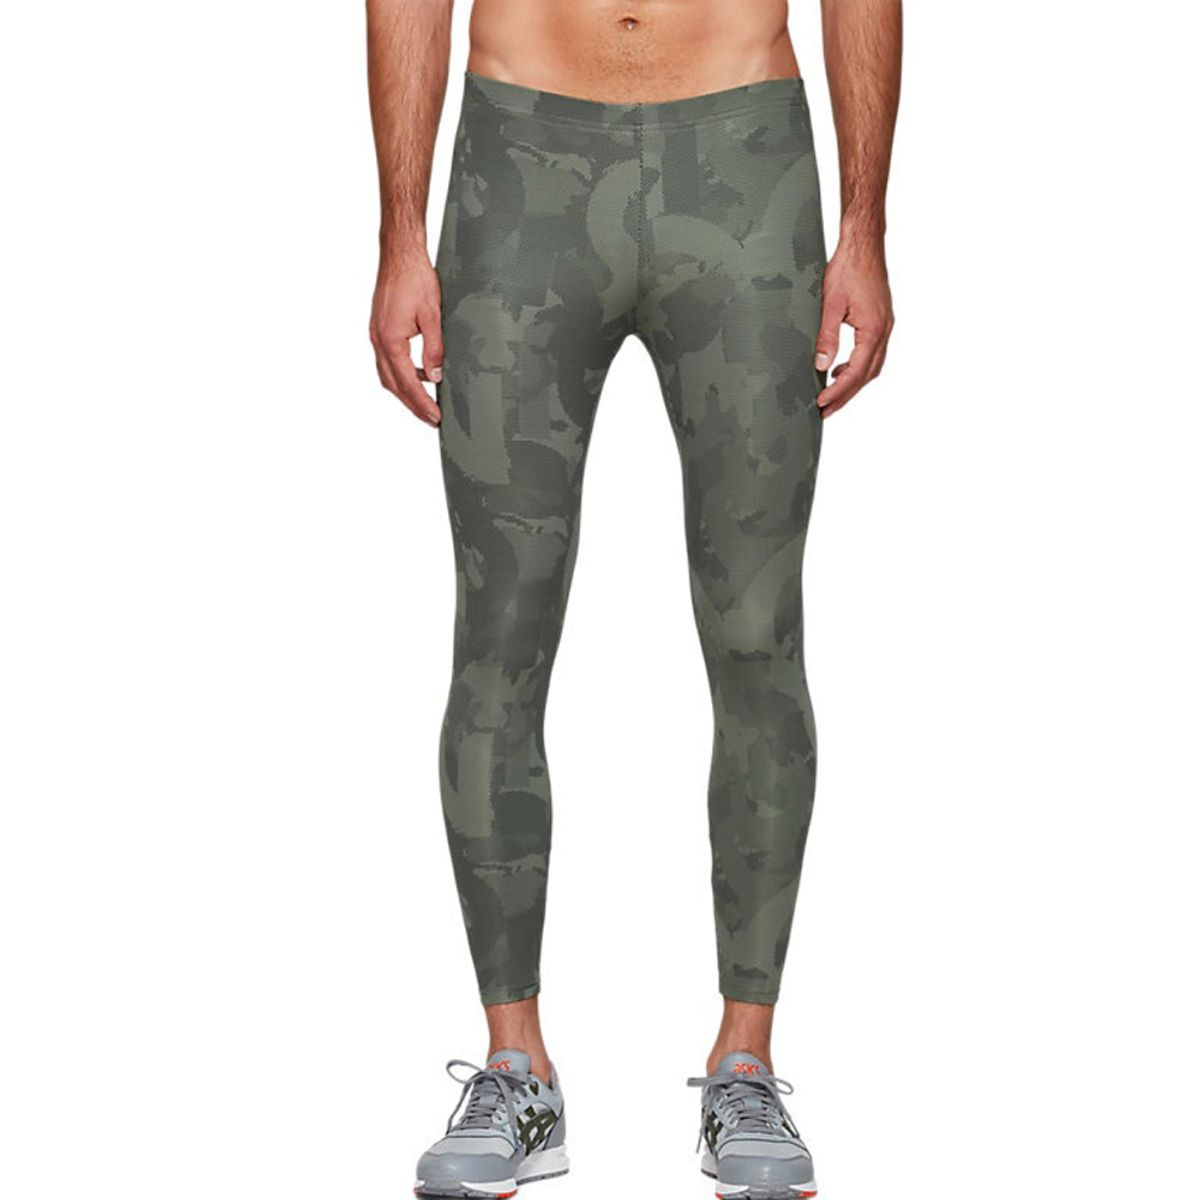 Calca-Asics-Tight---Masculino---Verde